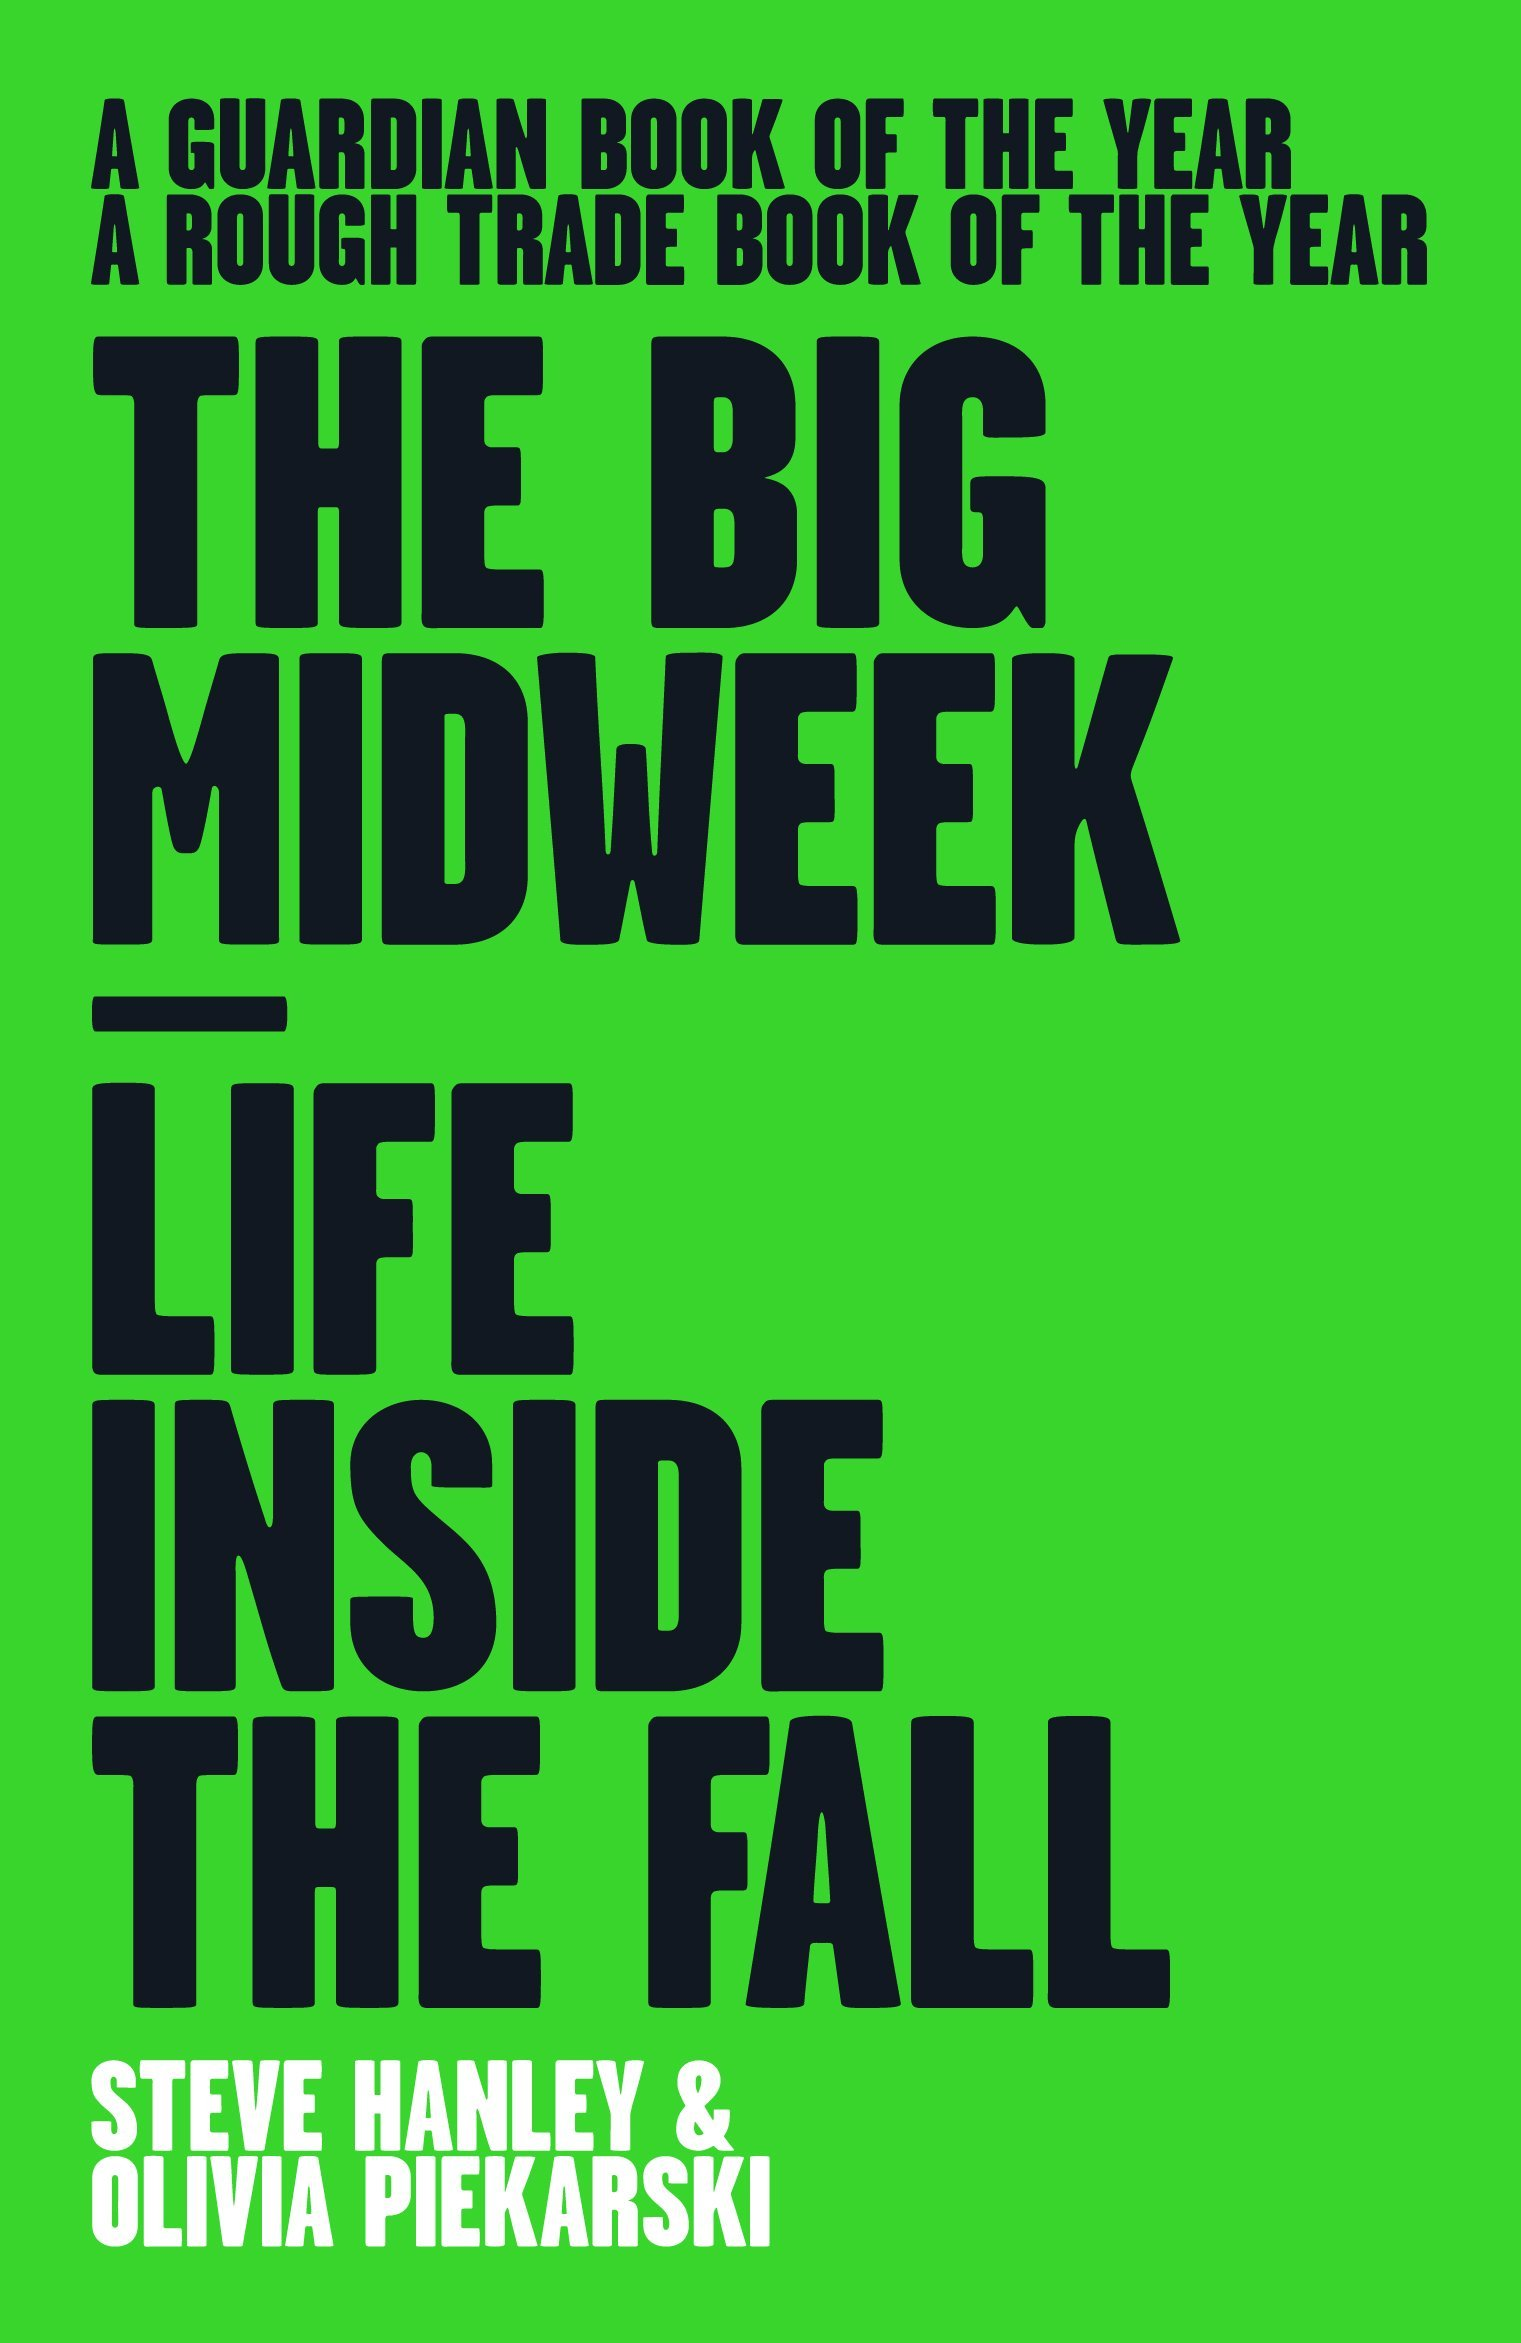 Image result for The Big Midweek: Life Inside The Fall